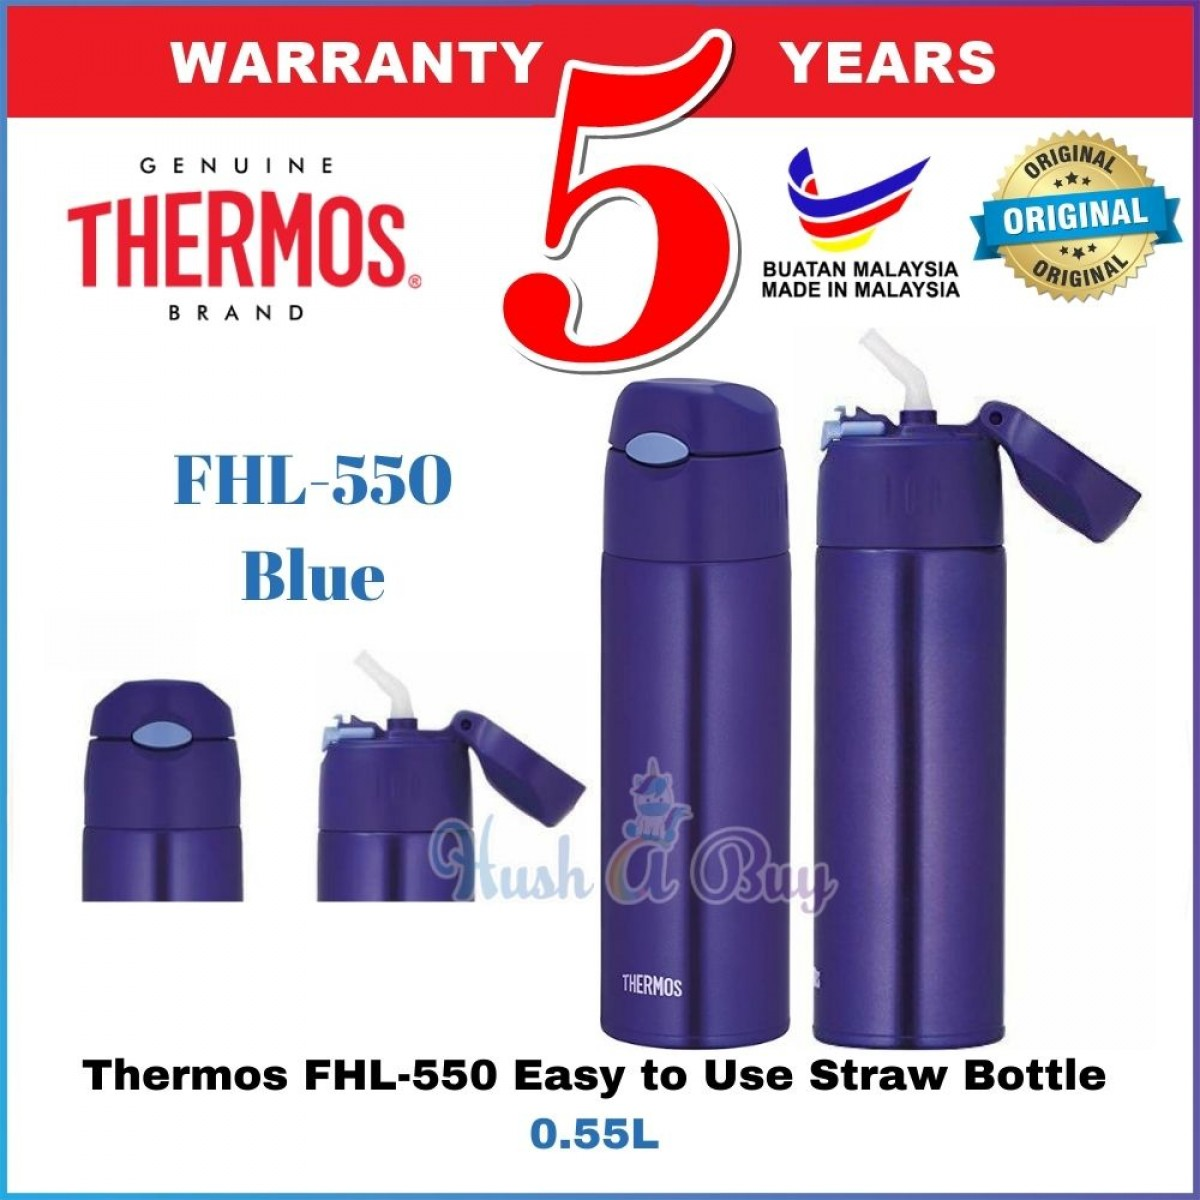 Thermos FHL-550 Easy to Use Straw Bottle 0.55L - 5 Years Warranty by Thermos Malaysia